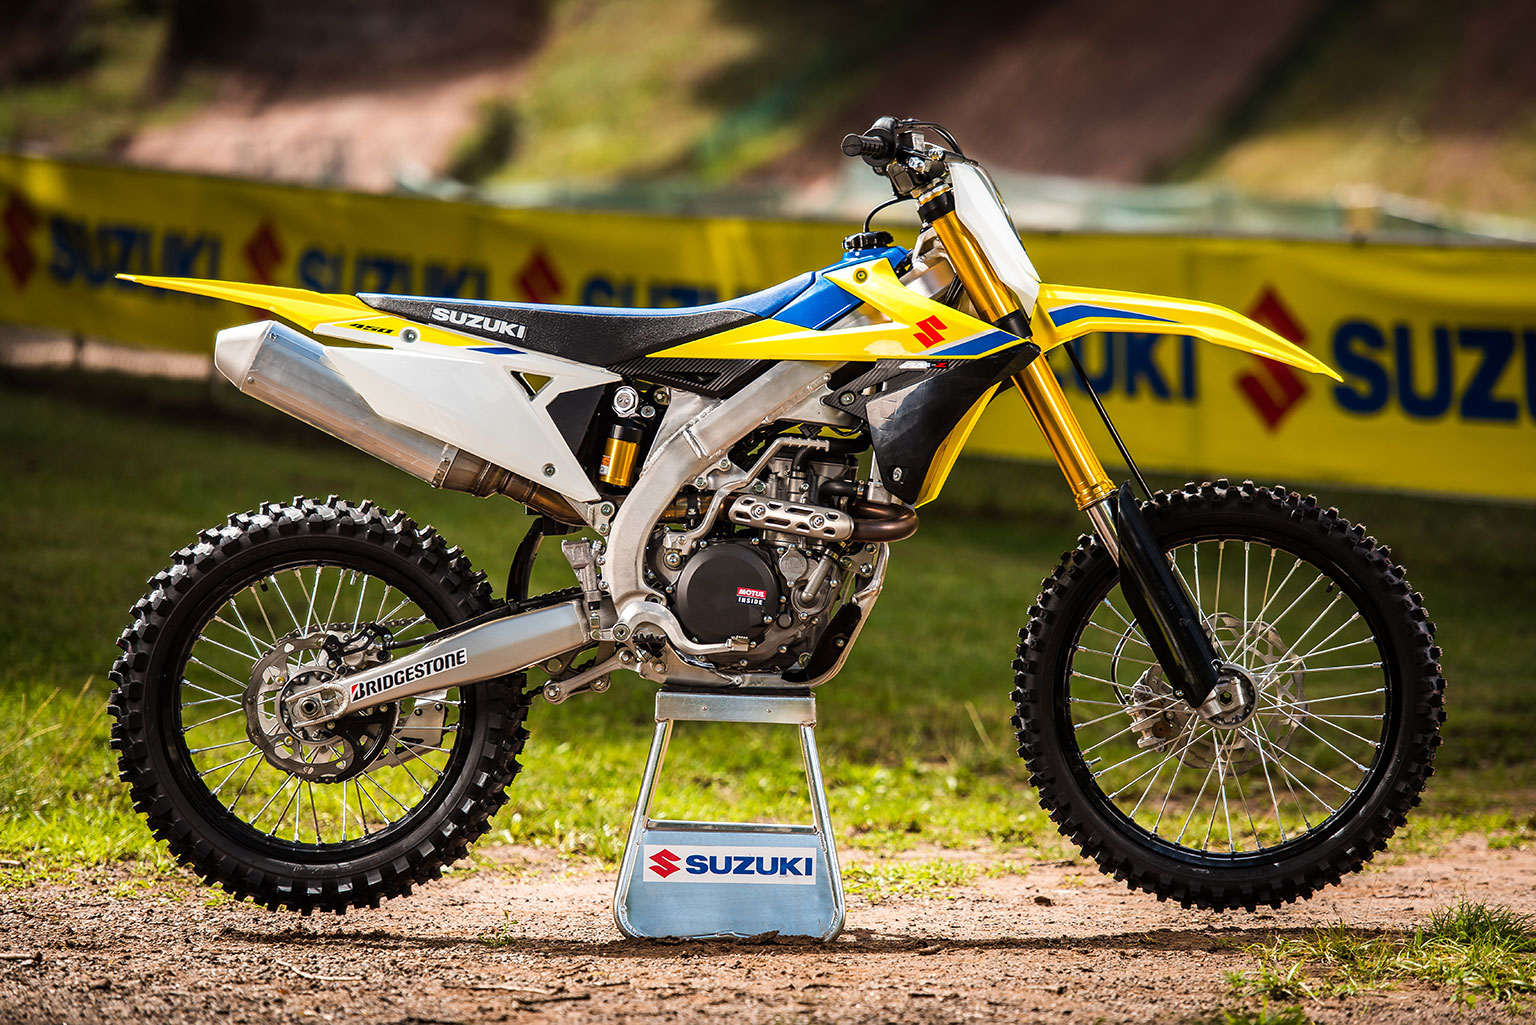 suzuki sets aggressive price for 2018 rmz450 motohead. Black Bedroom Furniture Sets. Home Design Ideas